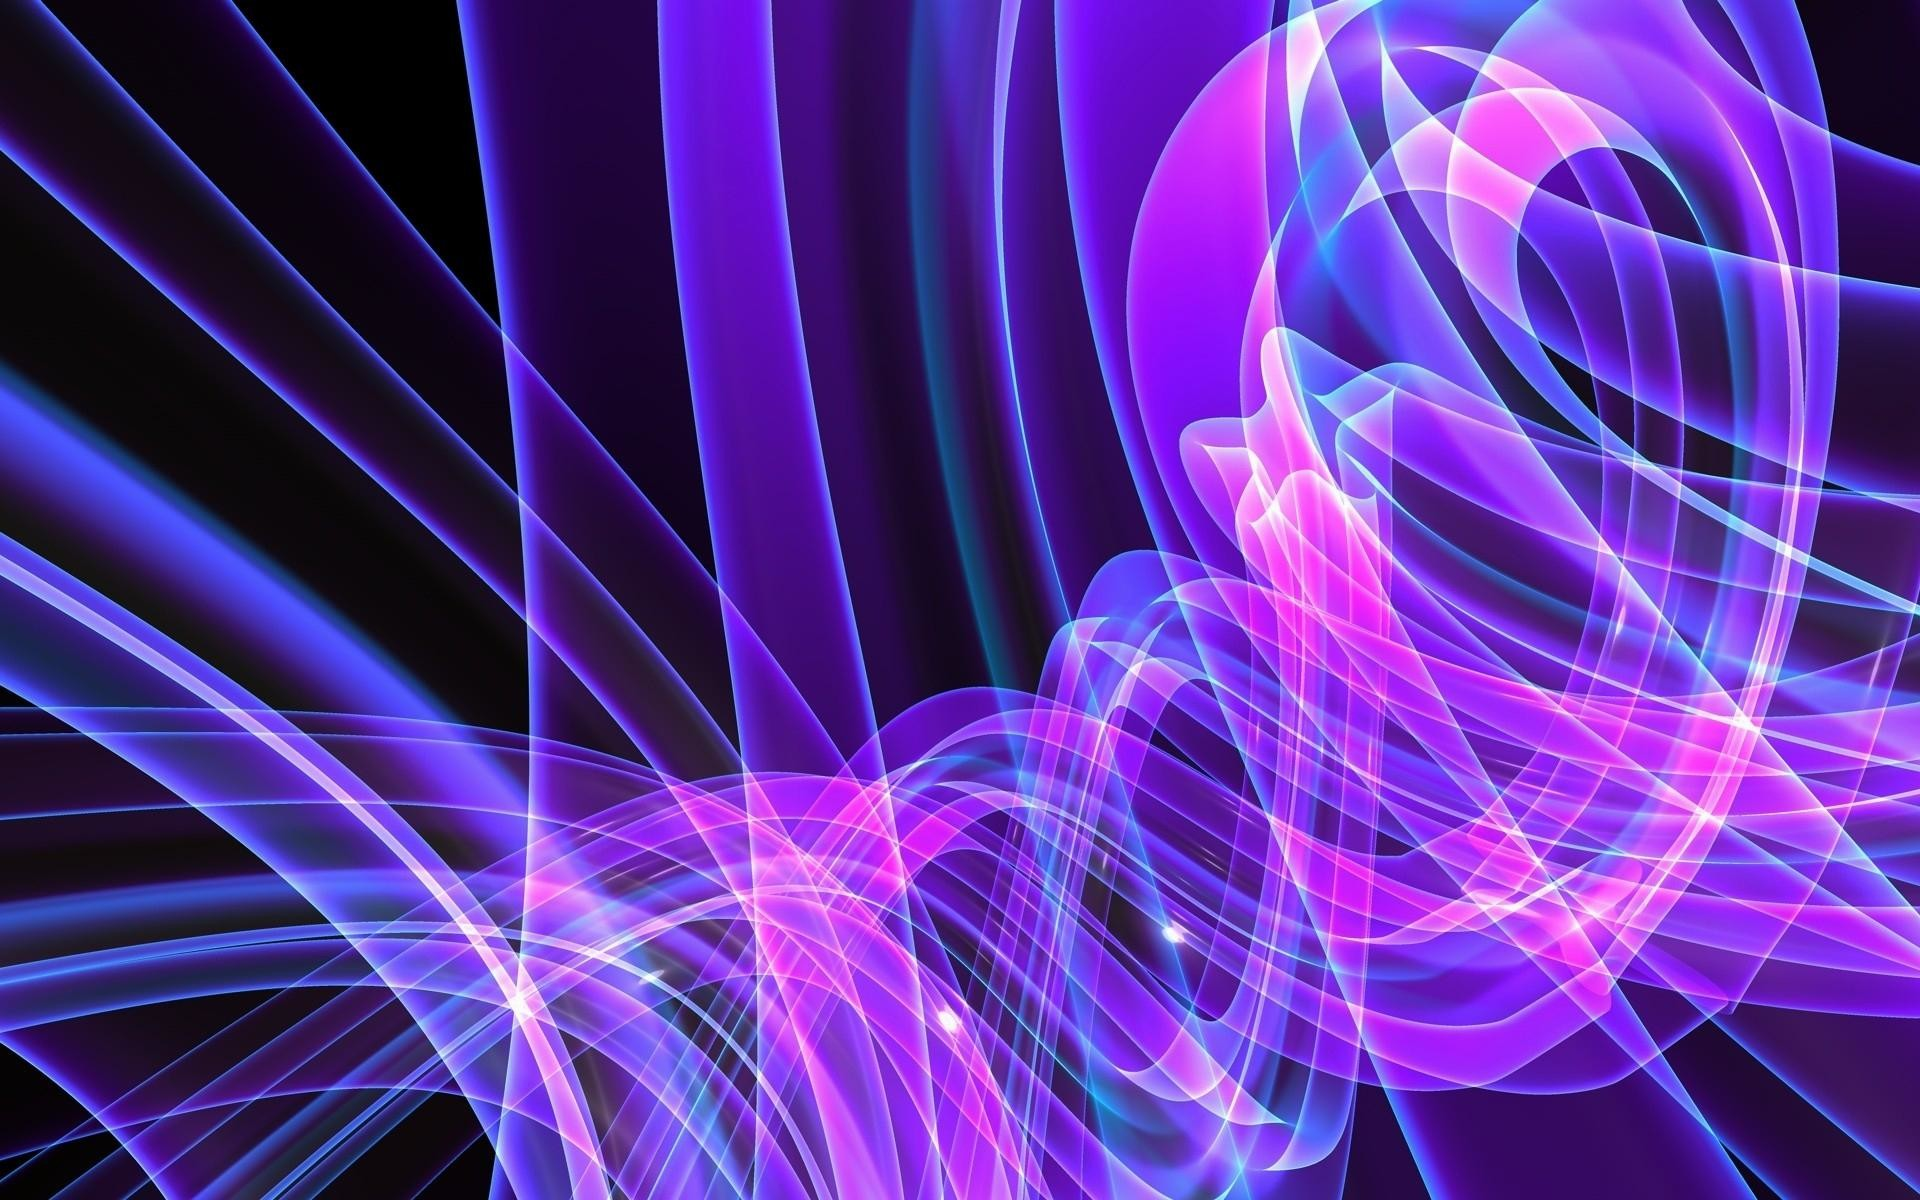 Bright-neon-wallpaper-images